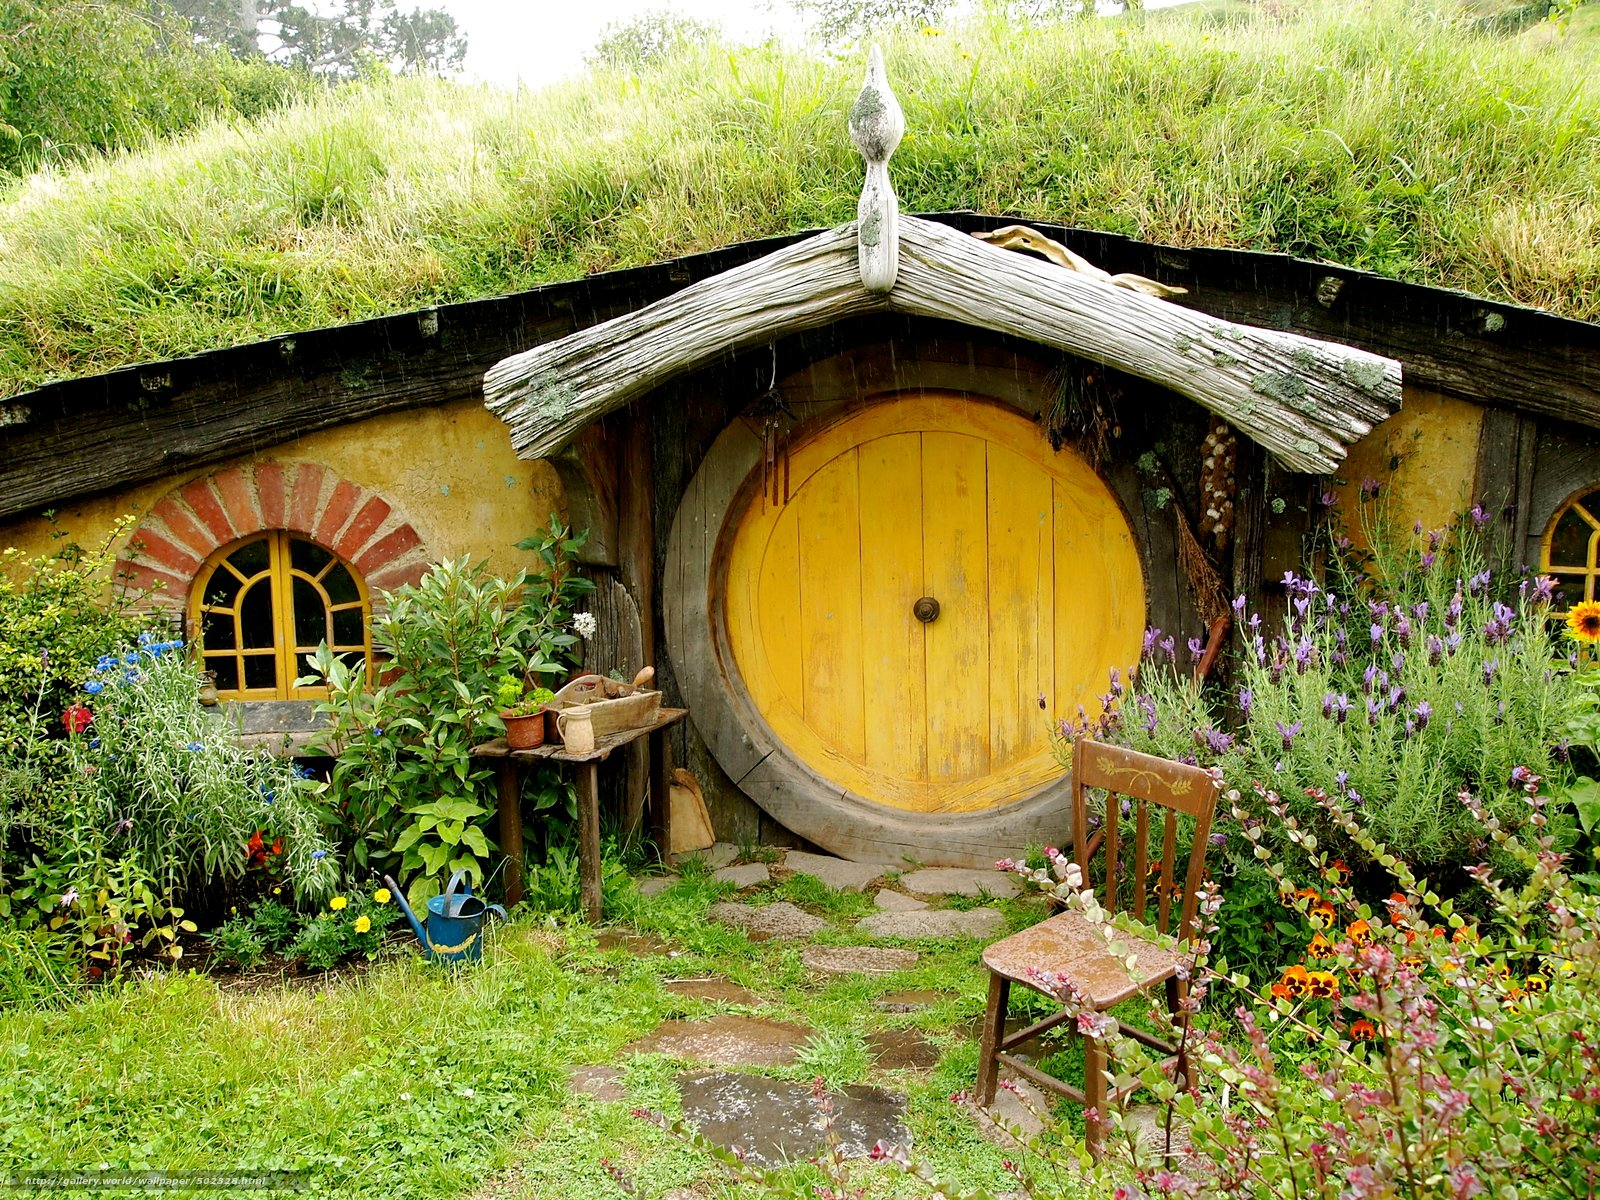 wallpaper new zealand Hobbit House landscape desktop wallpaper 1600x1200